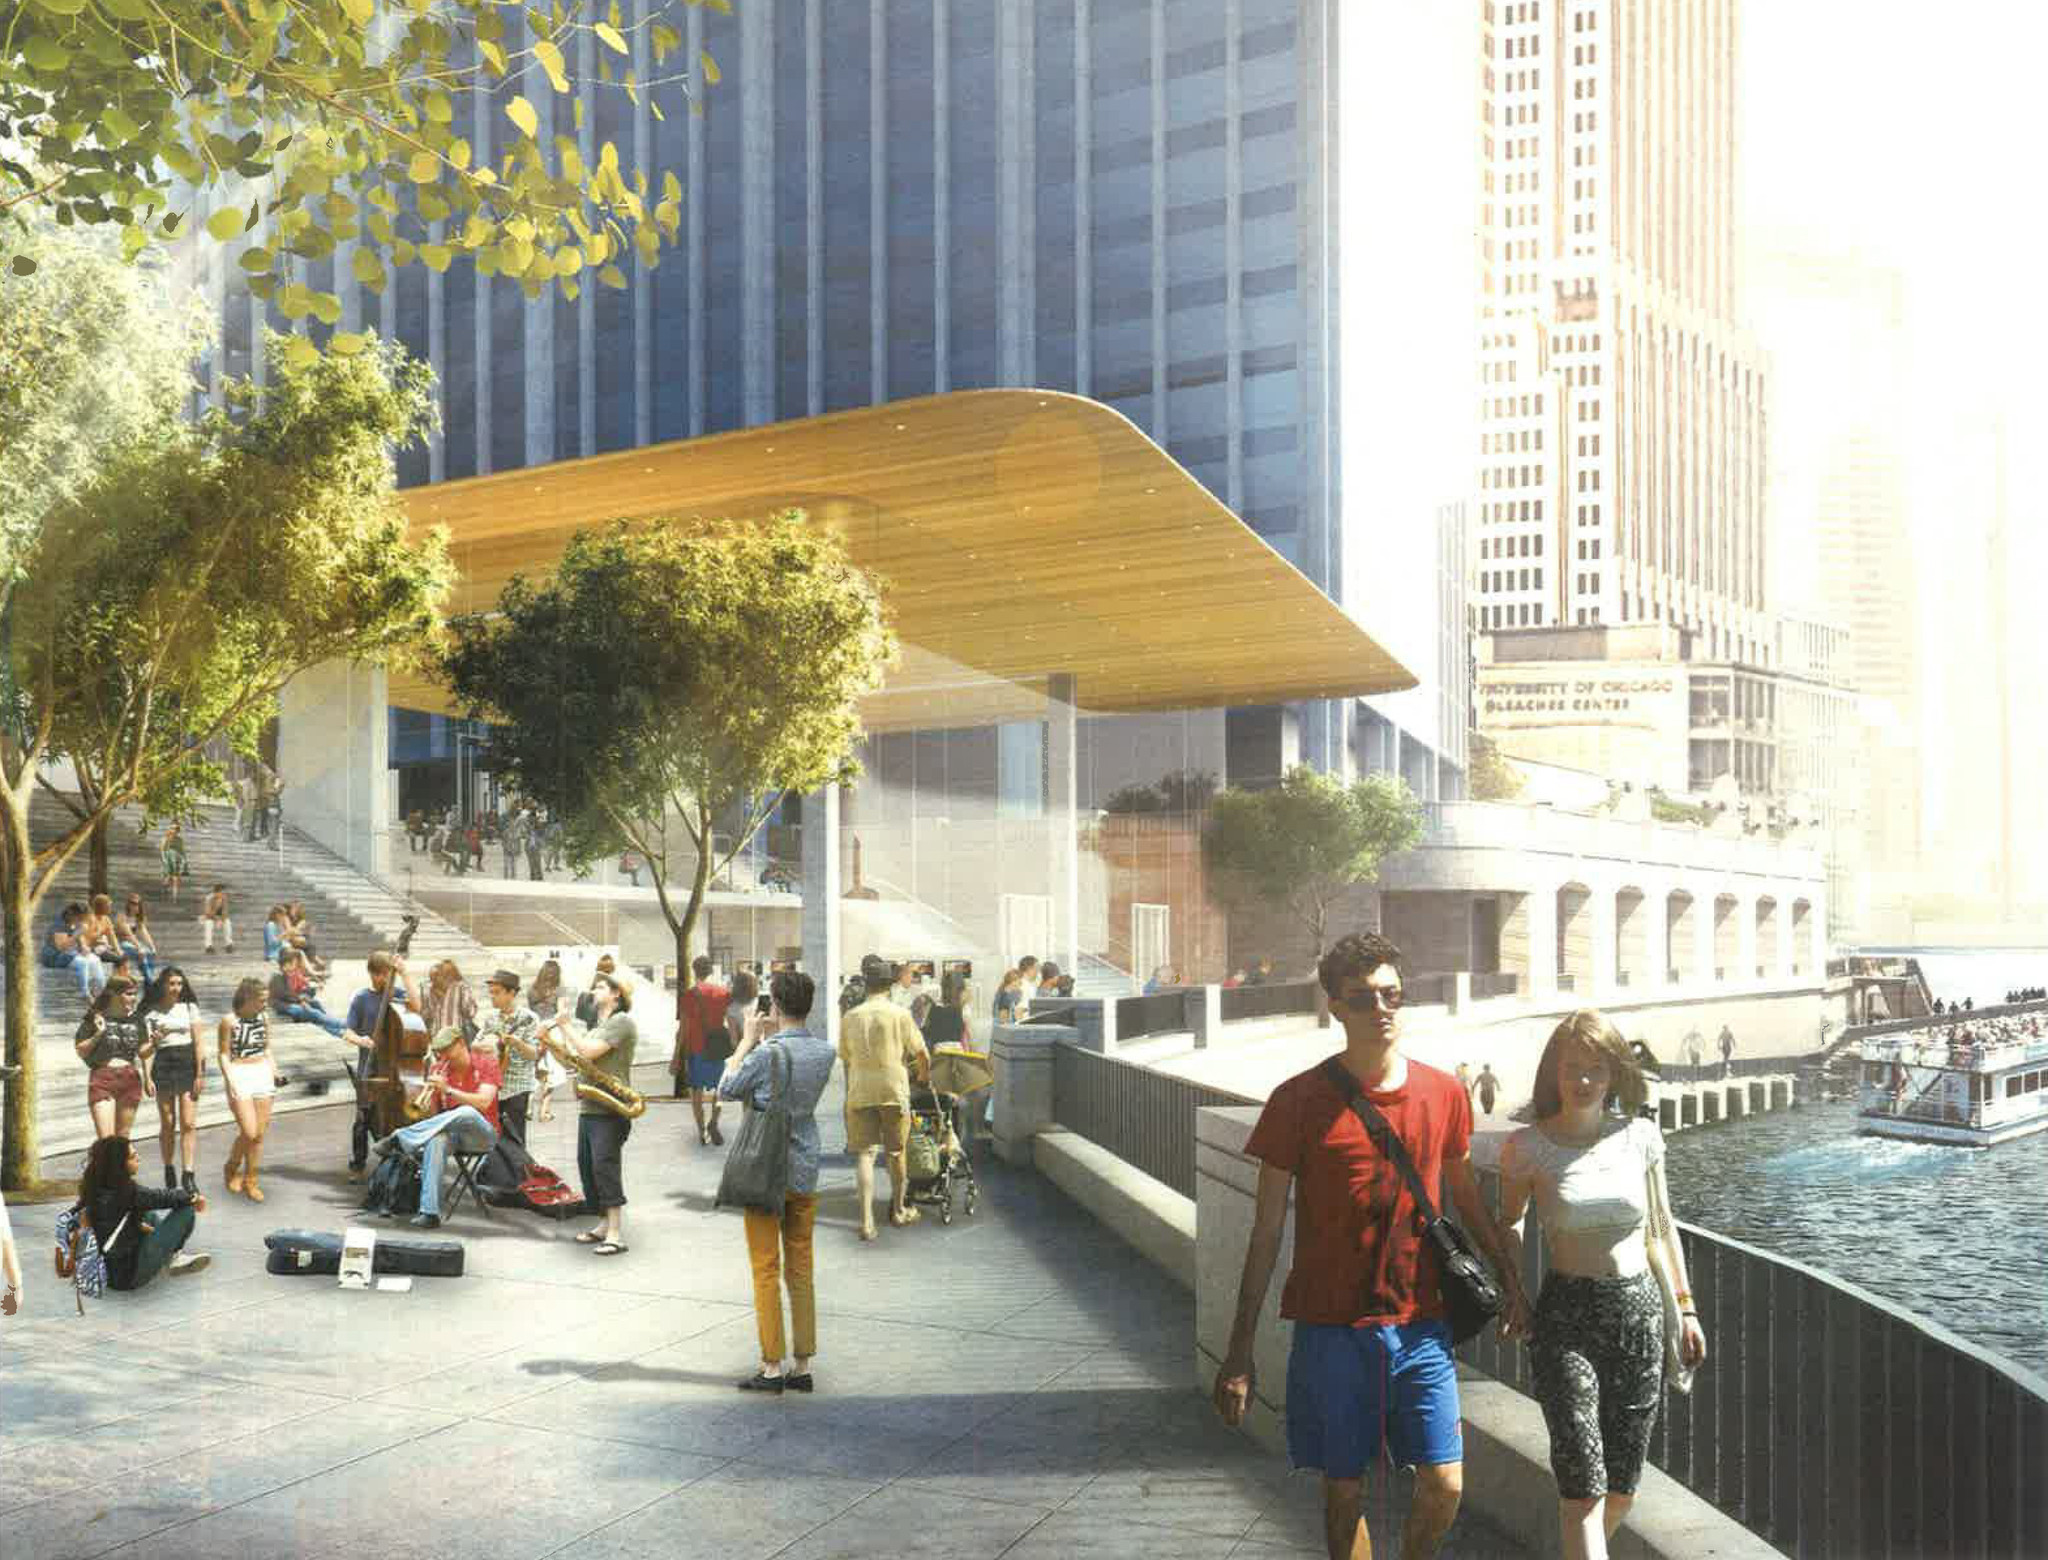 Exclusive Look At New Apple Store On The Chicago River Chicago - New apple store in chicago will have a giant macbook as its roof